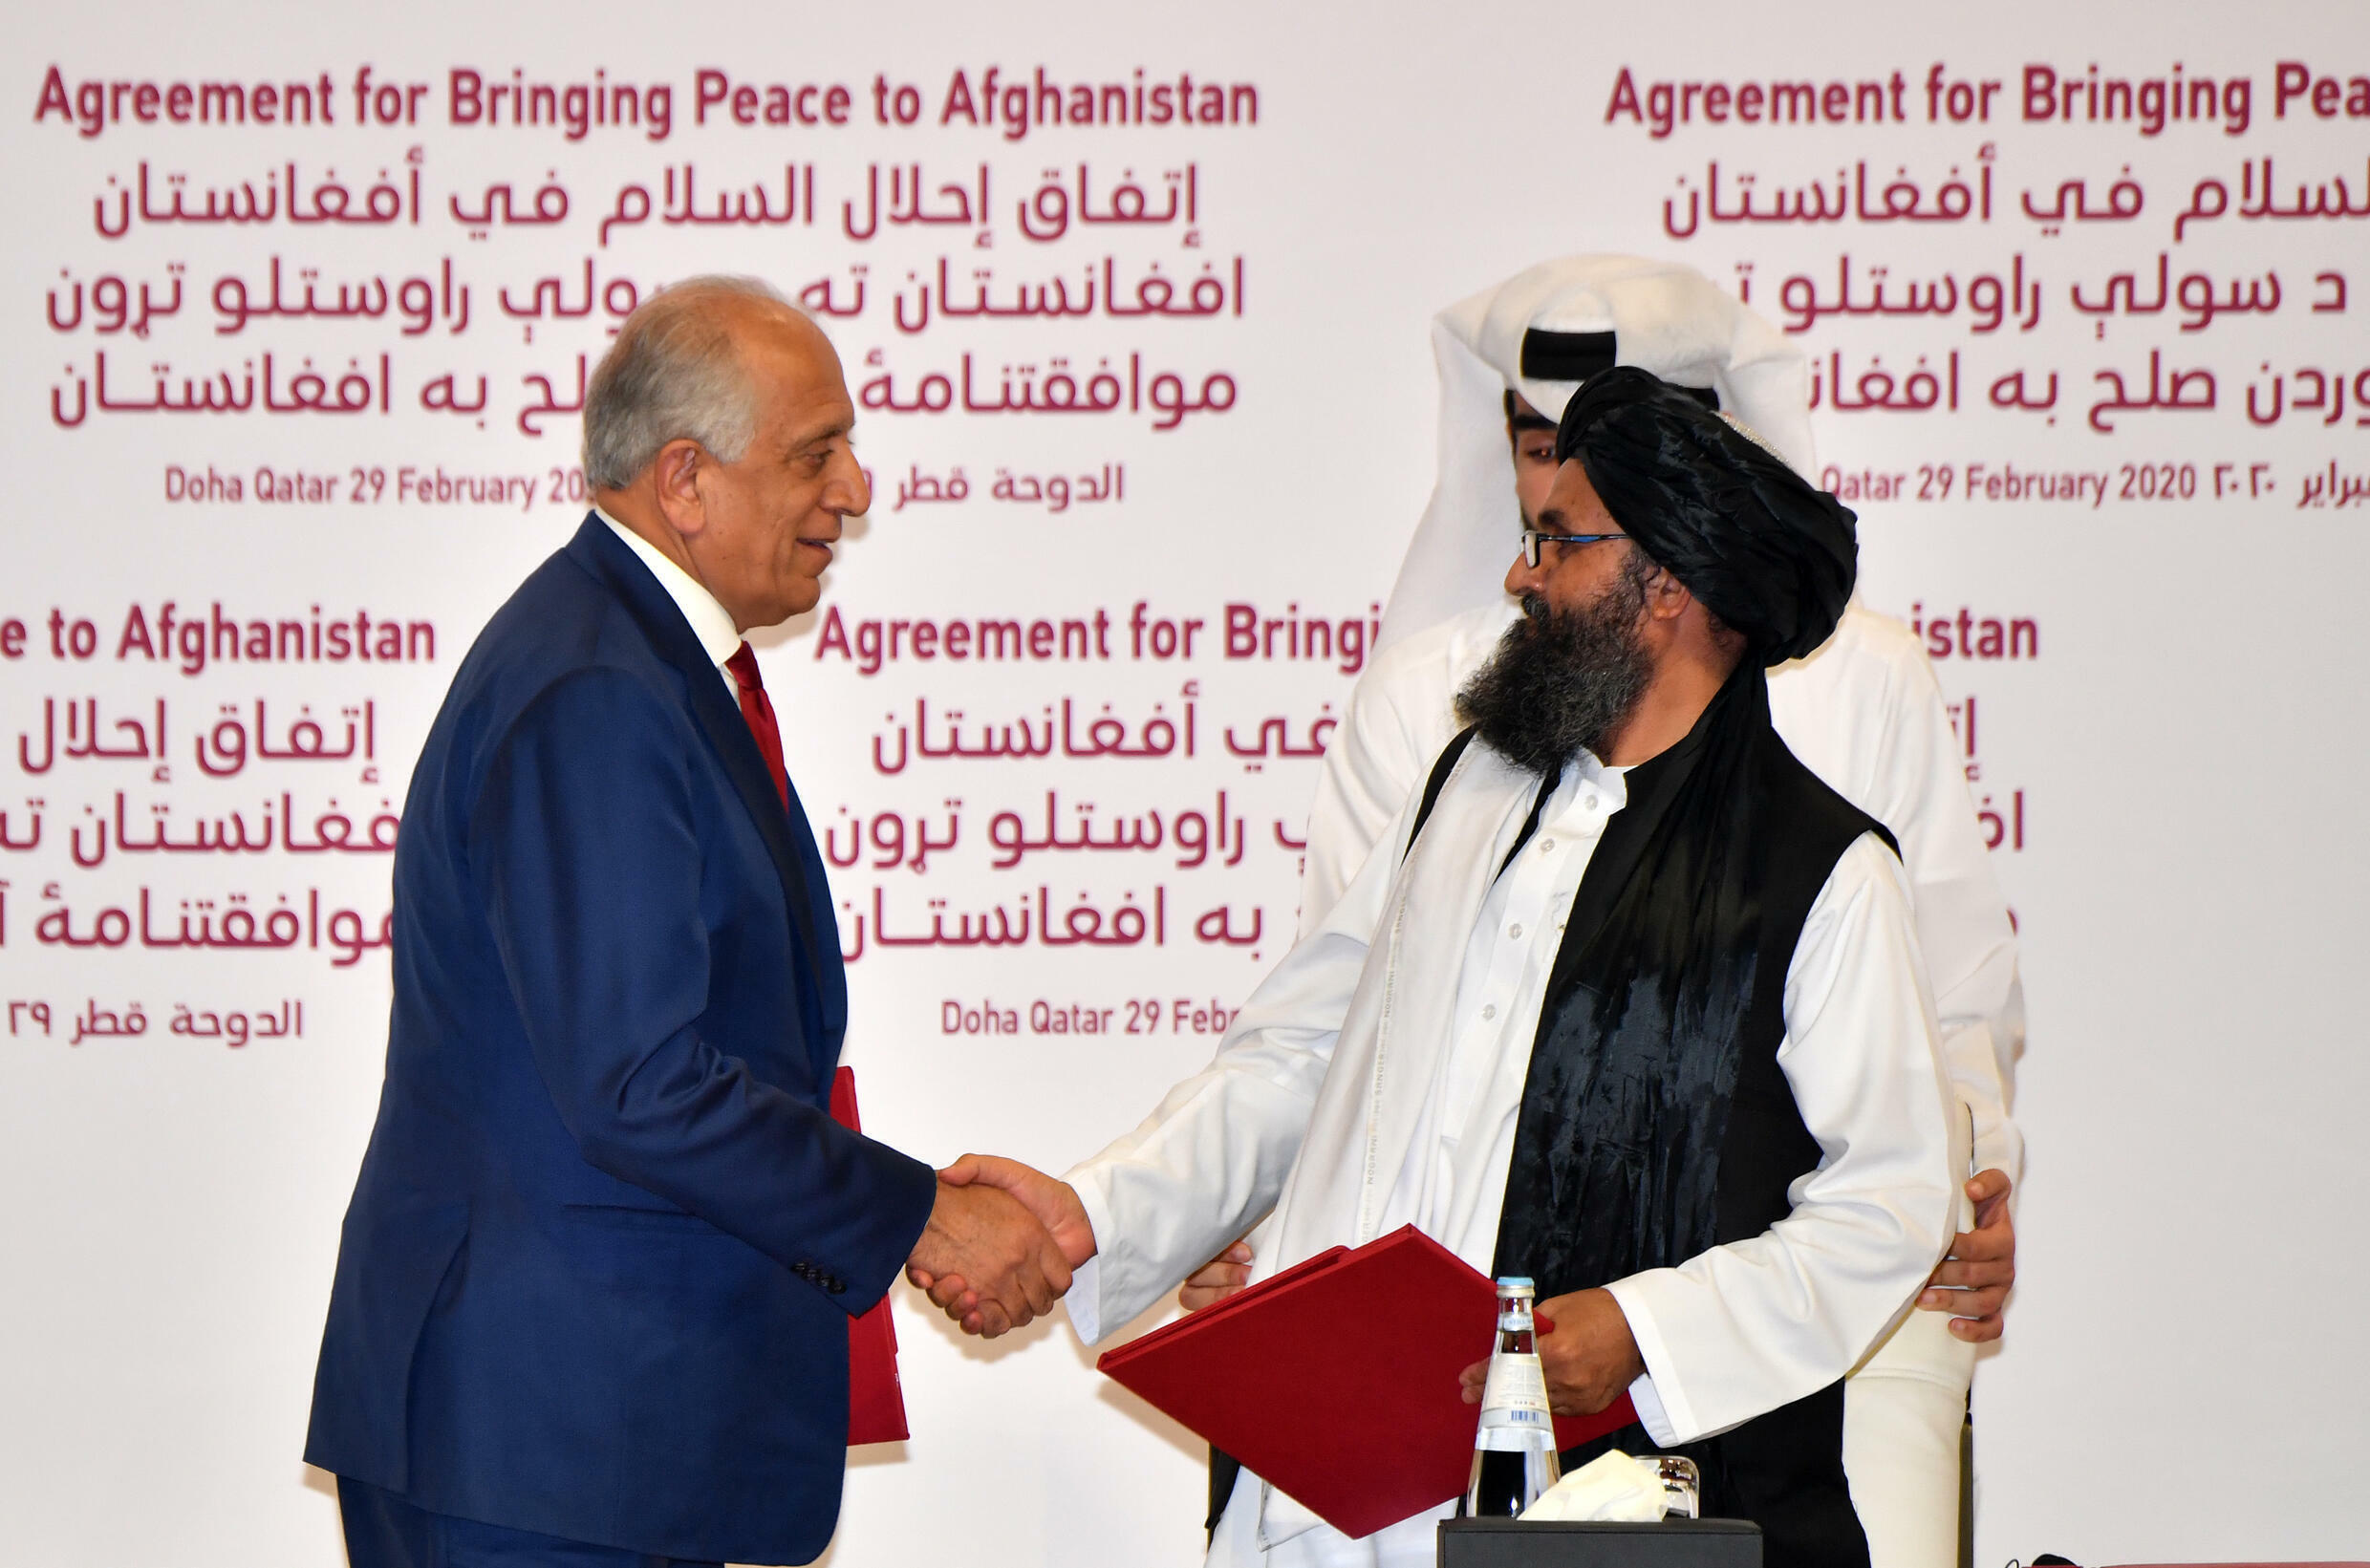 US Special Representative for Afghanistan Reconciliation Zalmay Khalilzad and Taliban co-founder Mullah Abdul Ghani Baradar shake hands after signing an agreement in the Qatari capital Doha on February 29, 2020